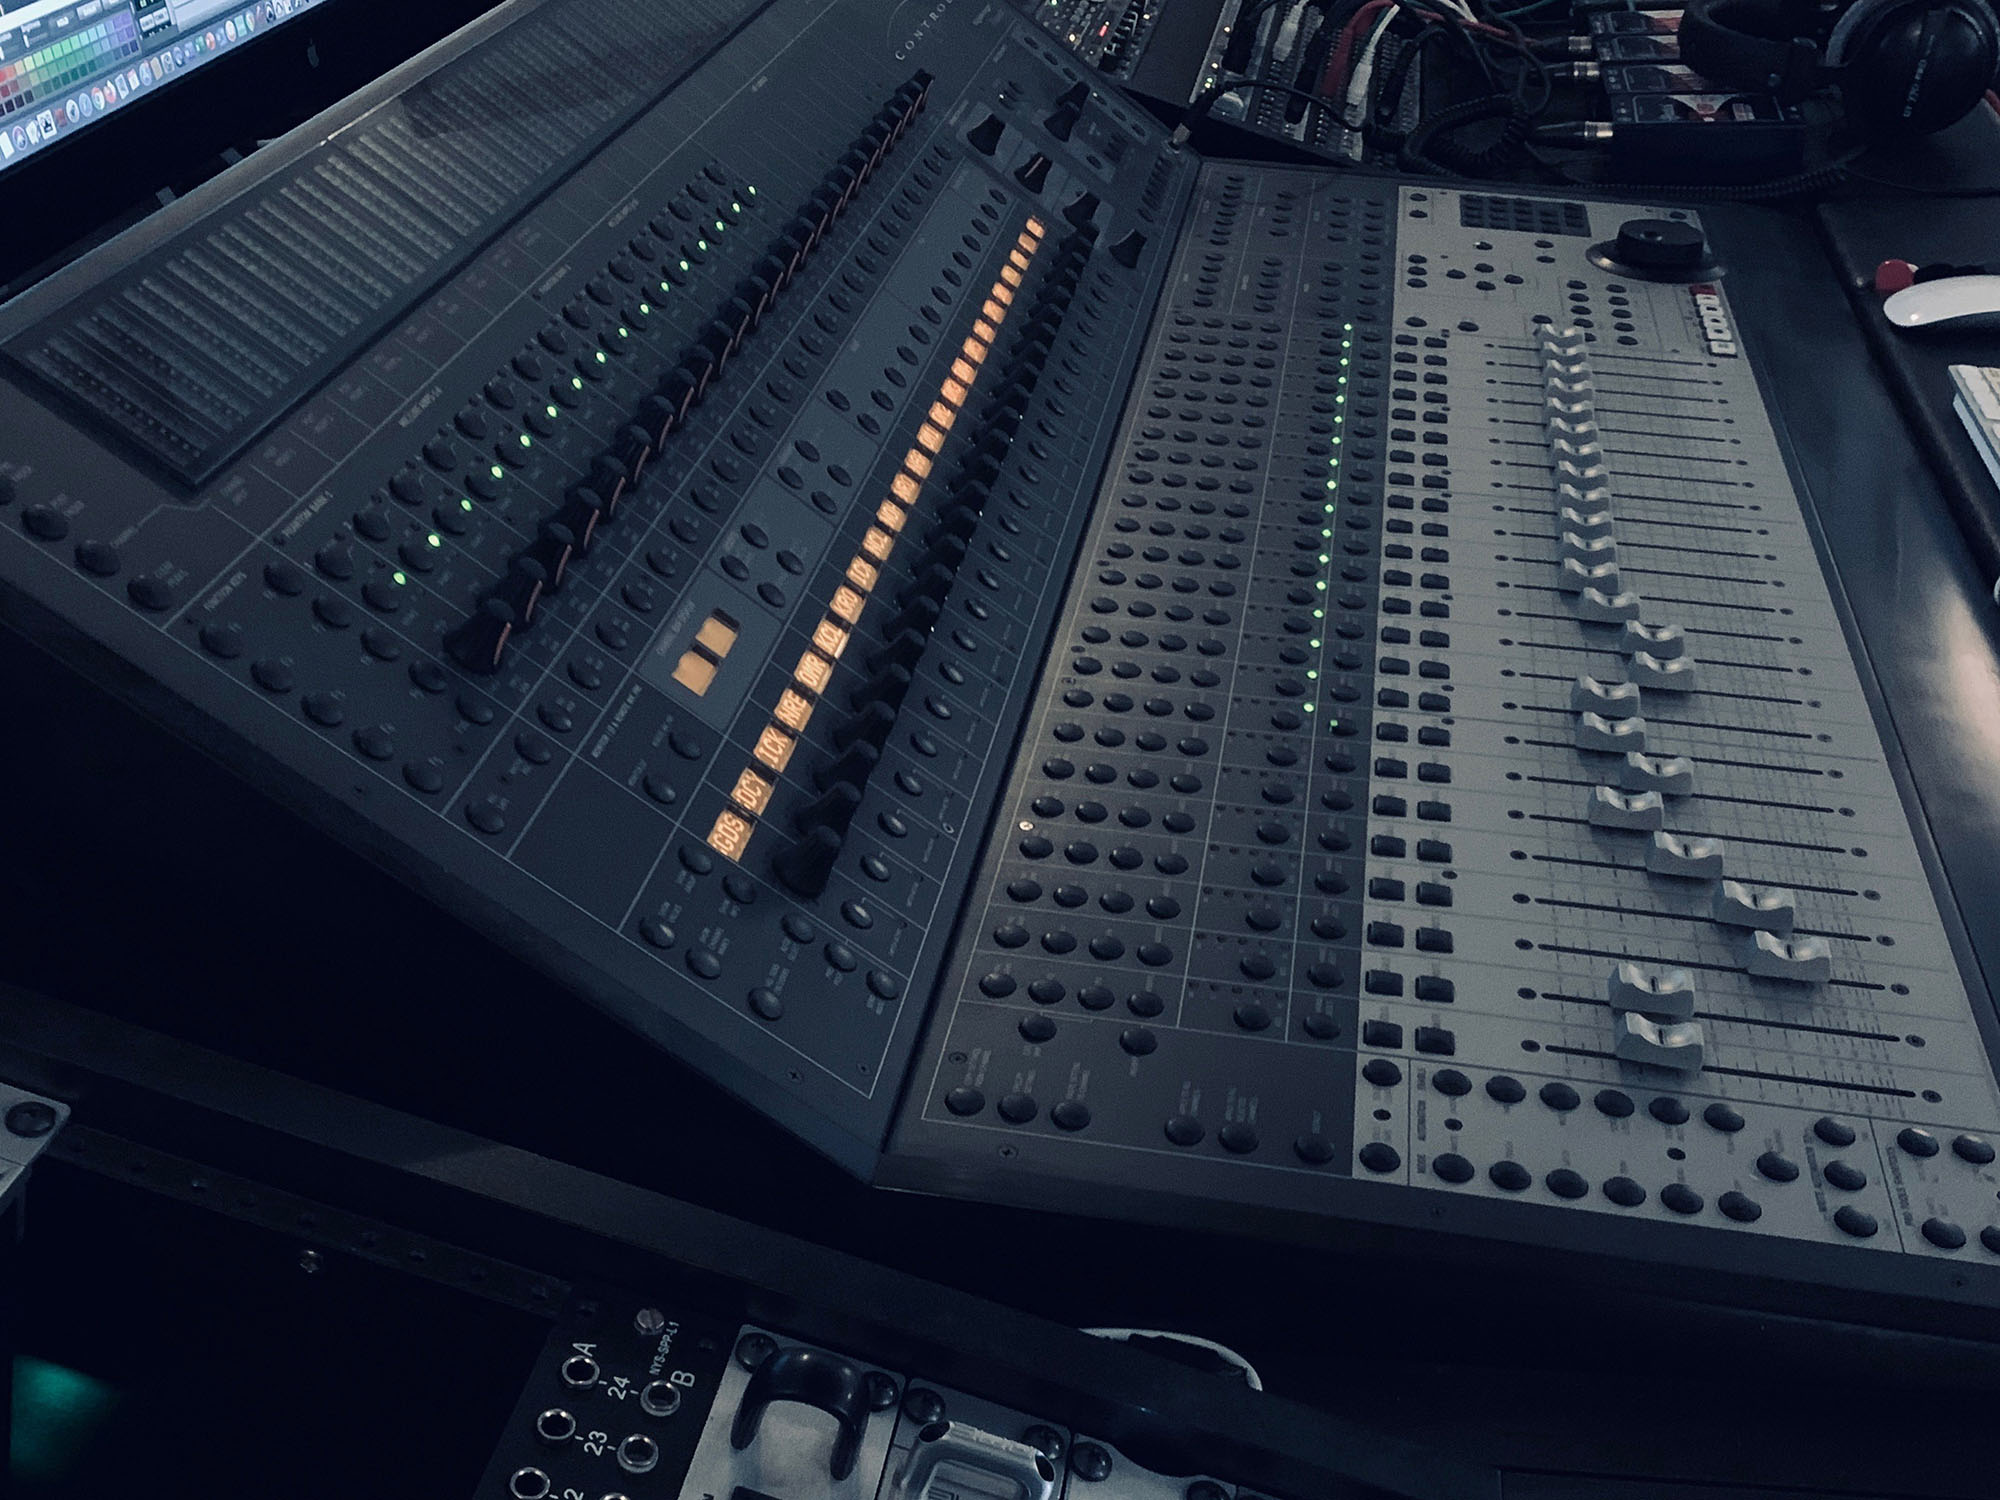 Digidesign Control | 24 mixing desk DAW controller at Toneshed Recording Studio